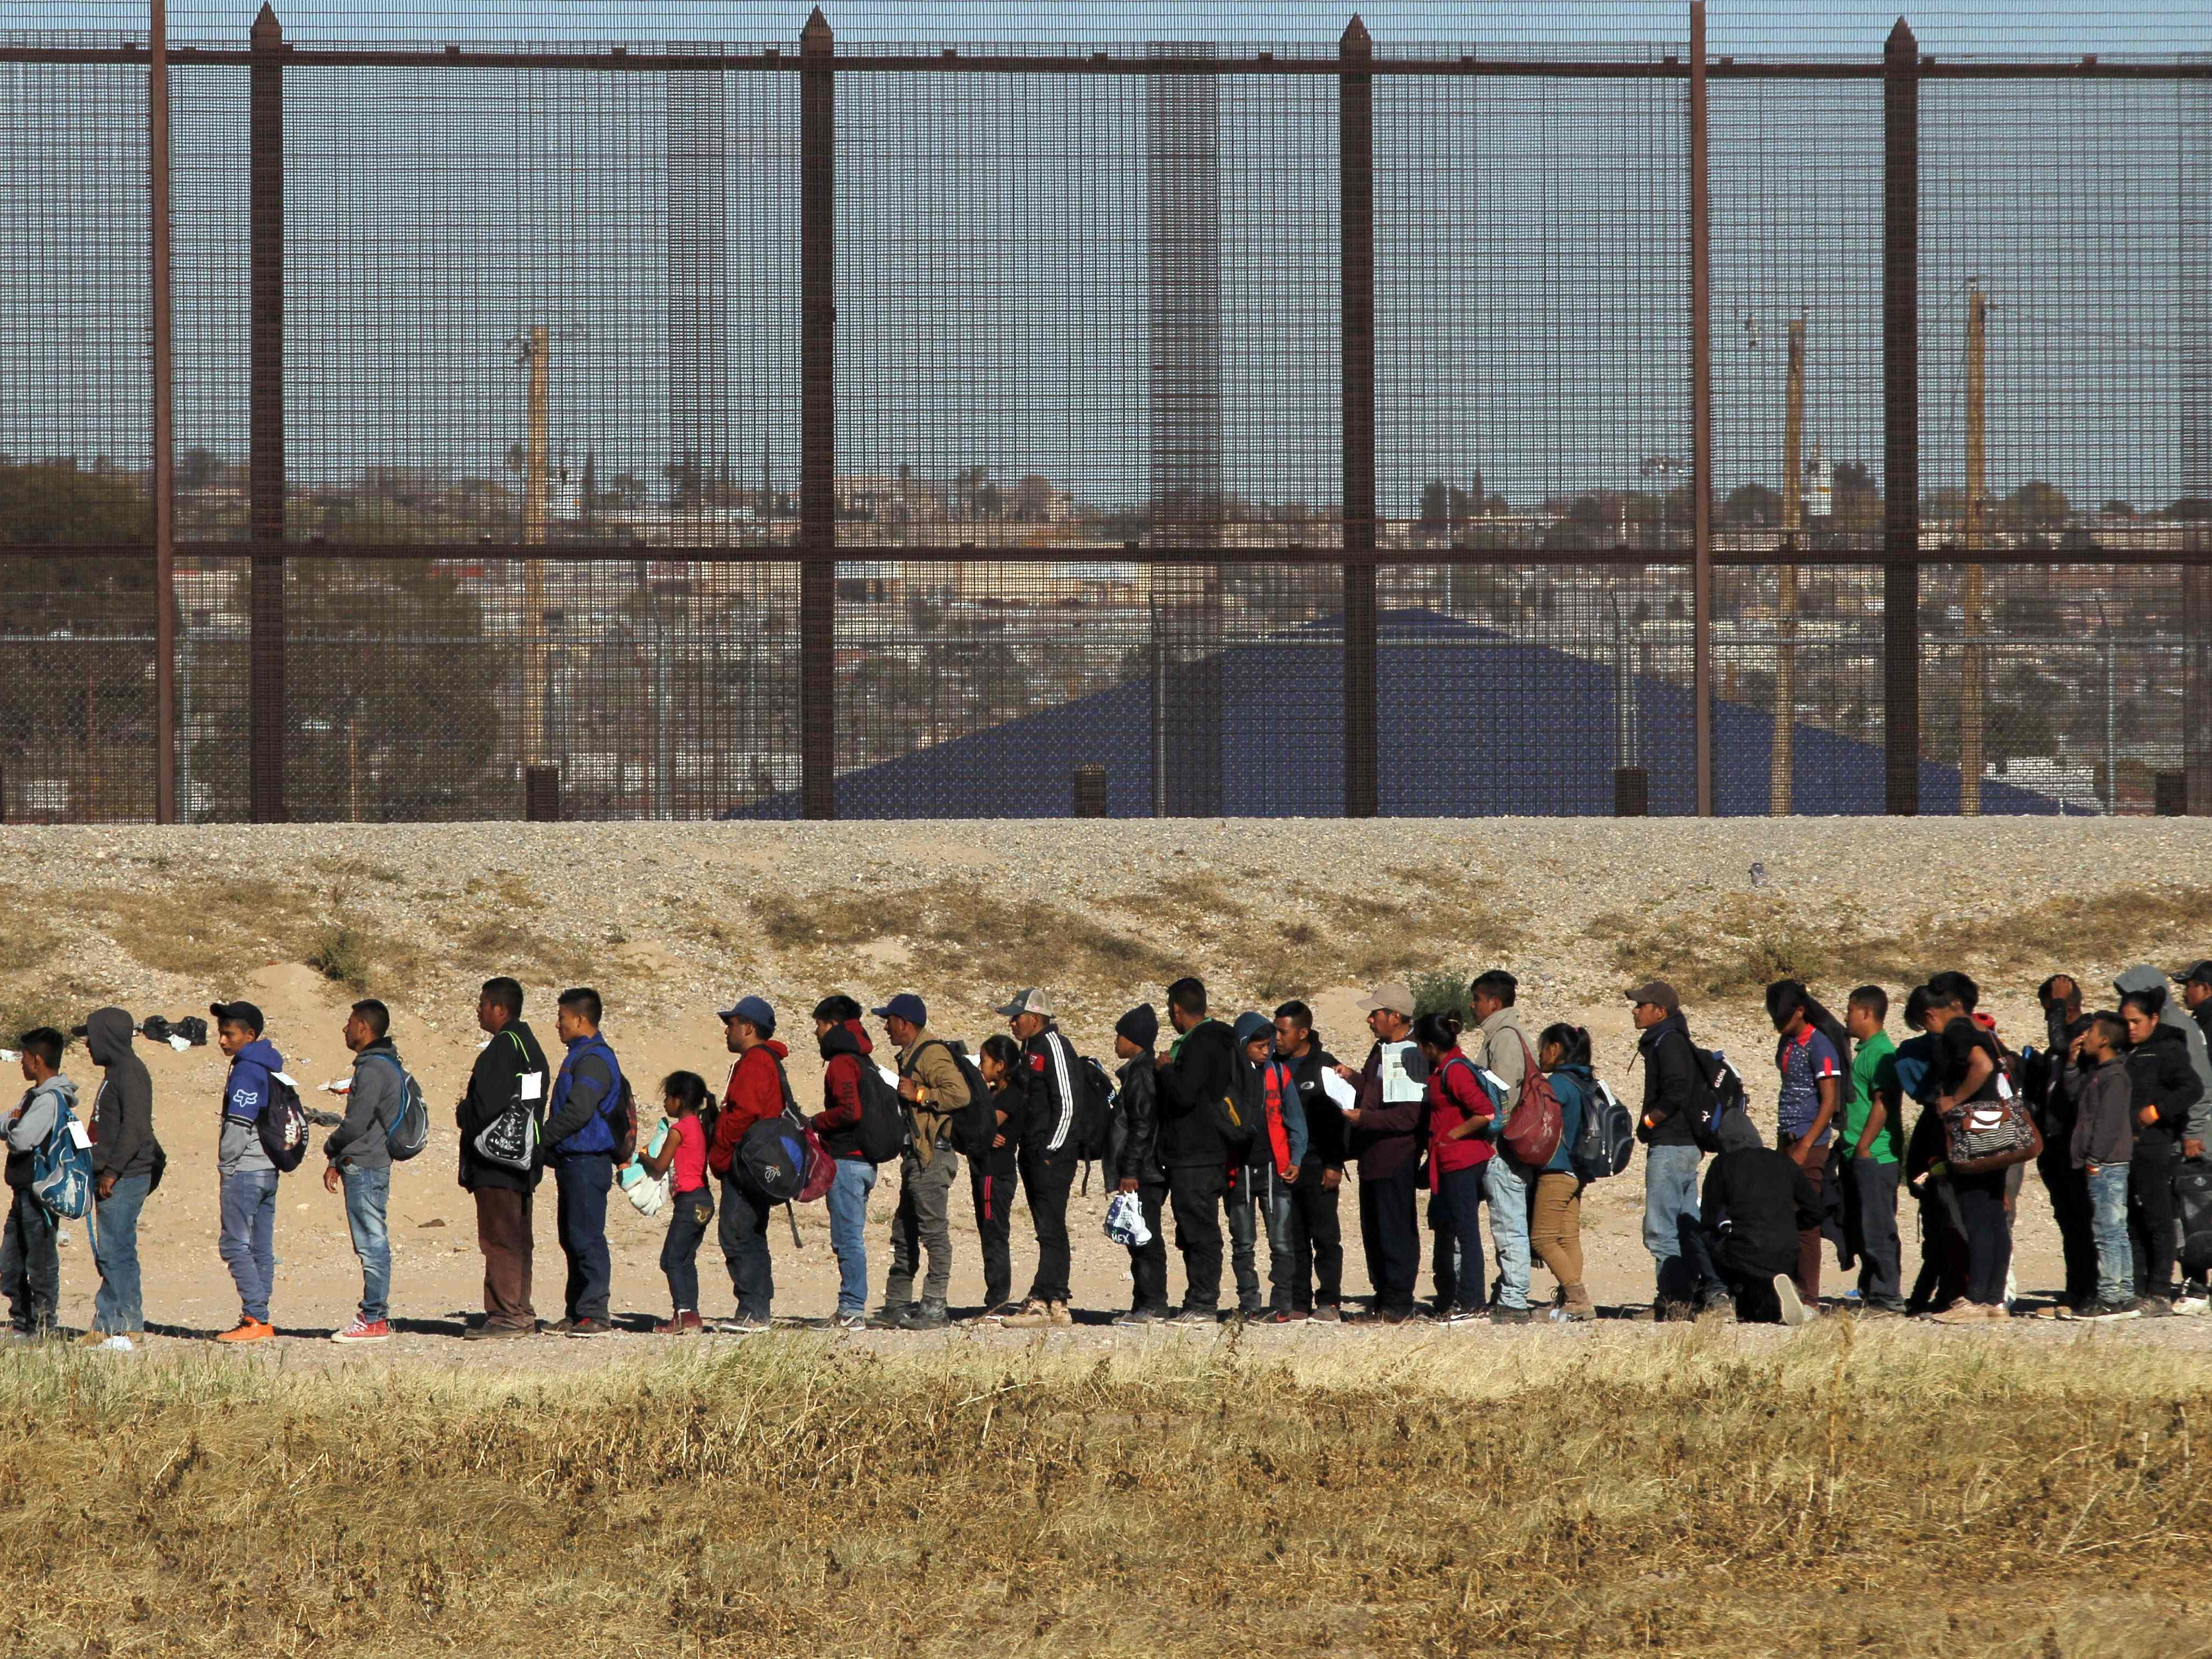 Nearly 150 Central American migrants seeking political asylum in the United States are detained by the Border Patrol, after entering the US through the Rio Grande, along the border with Ciudad Juarez, Chihuahua state, Mexico, on Dec. 3, 2018.